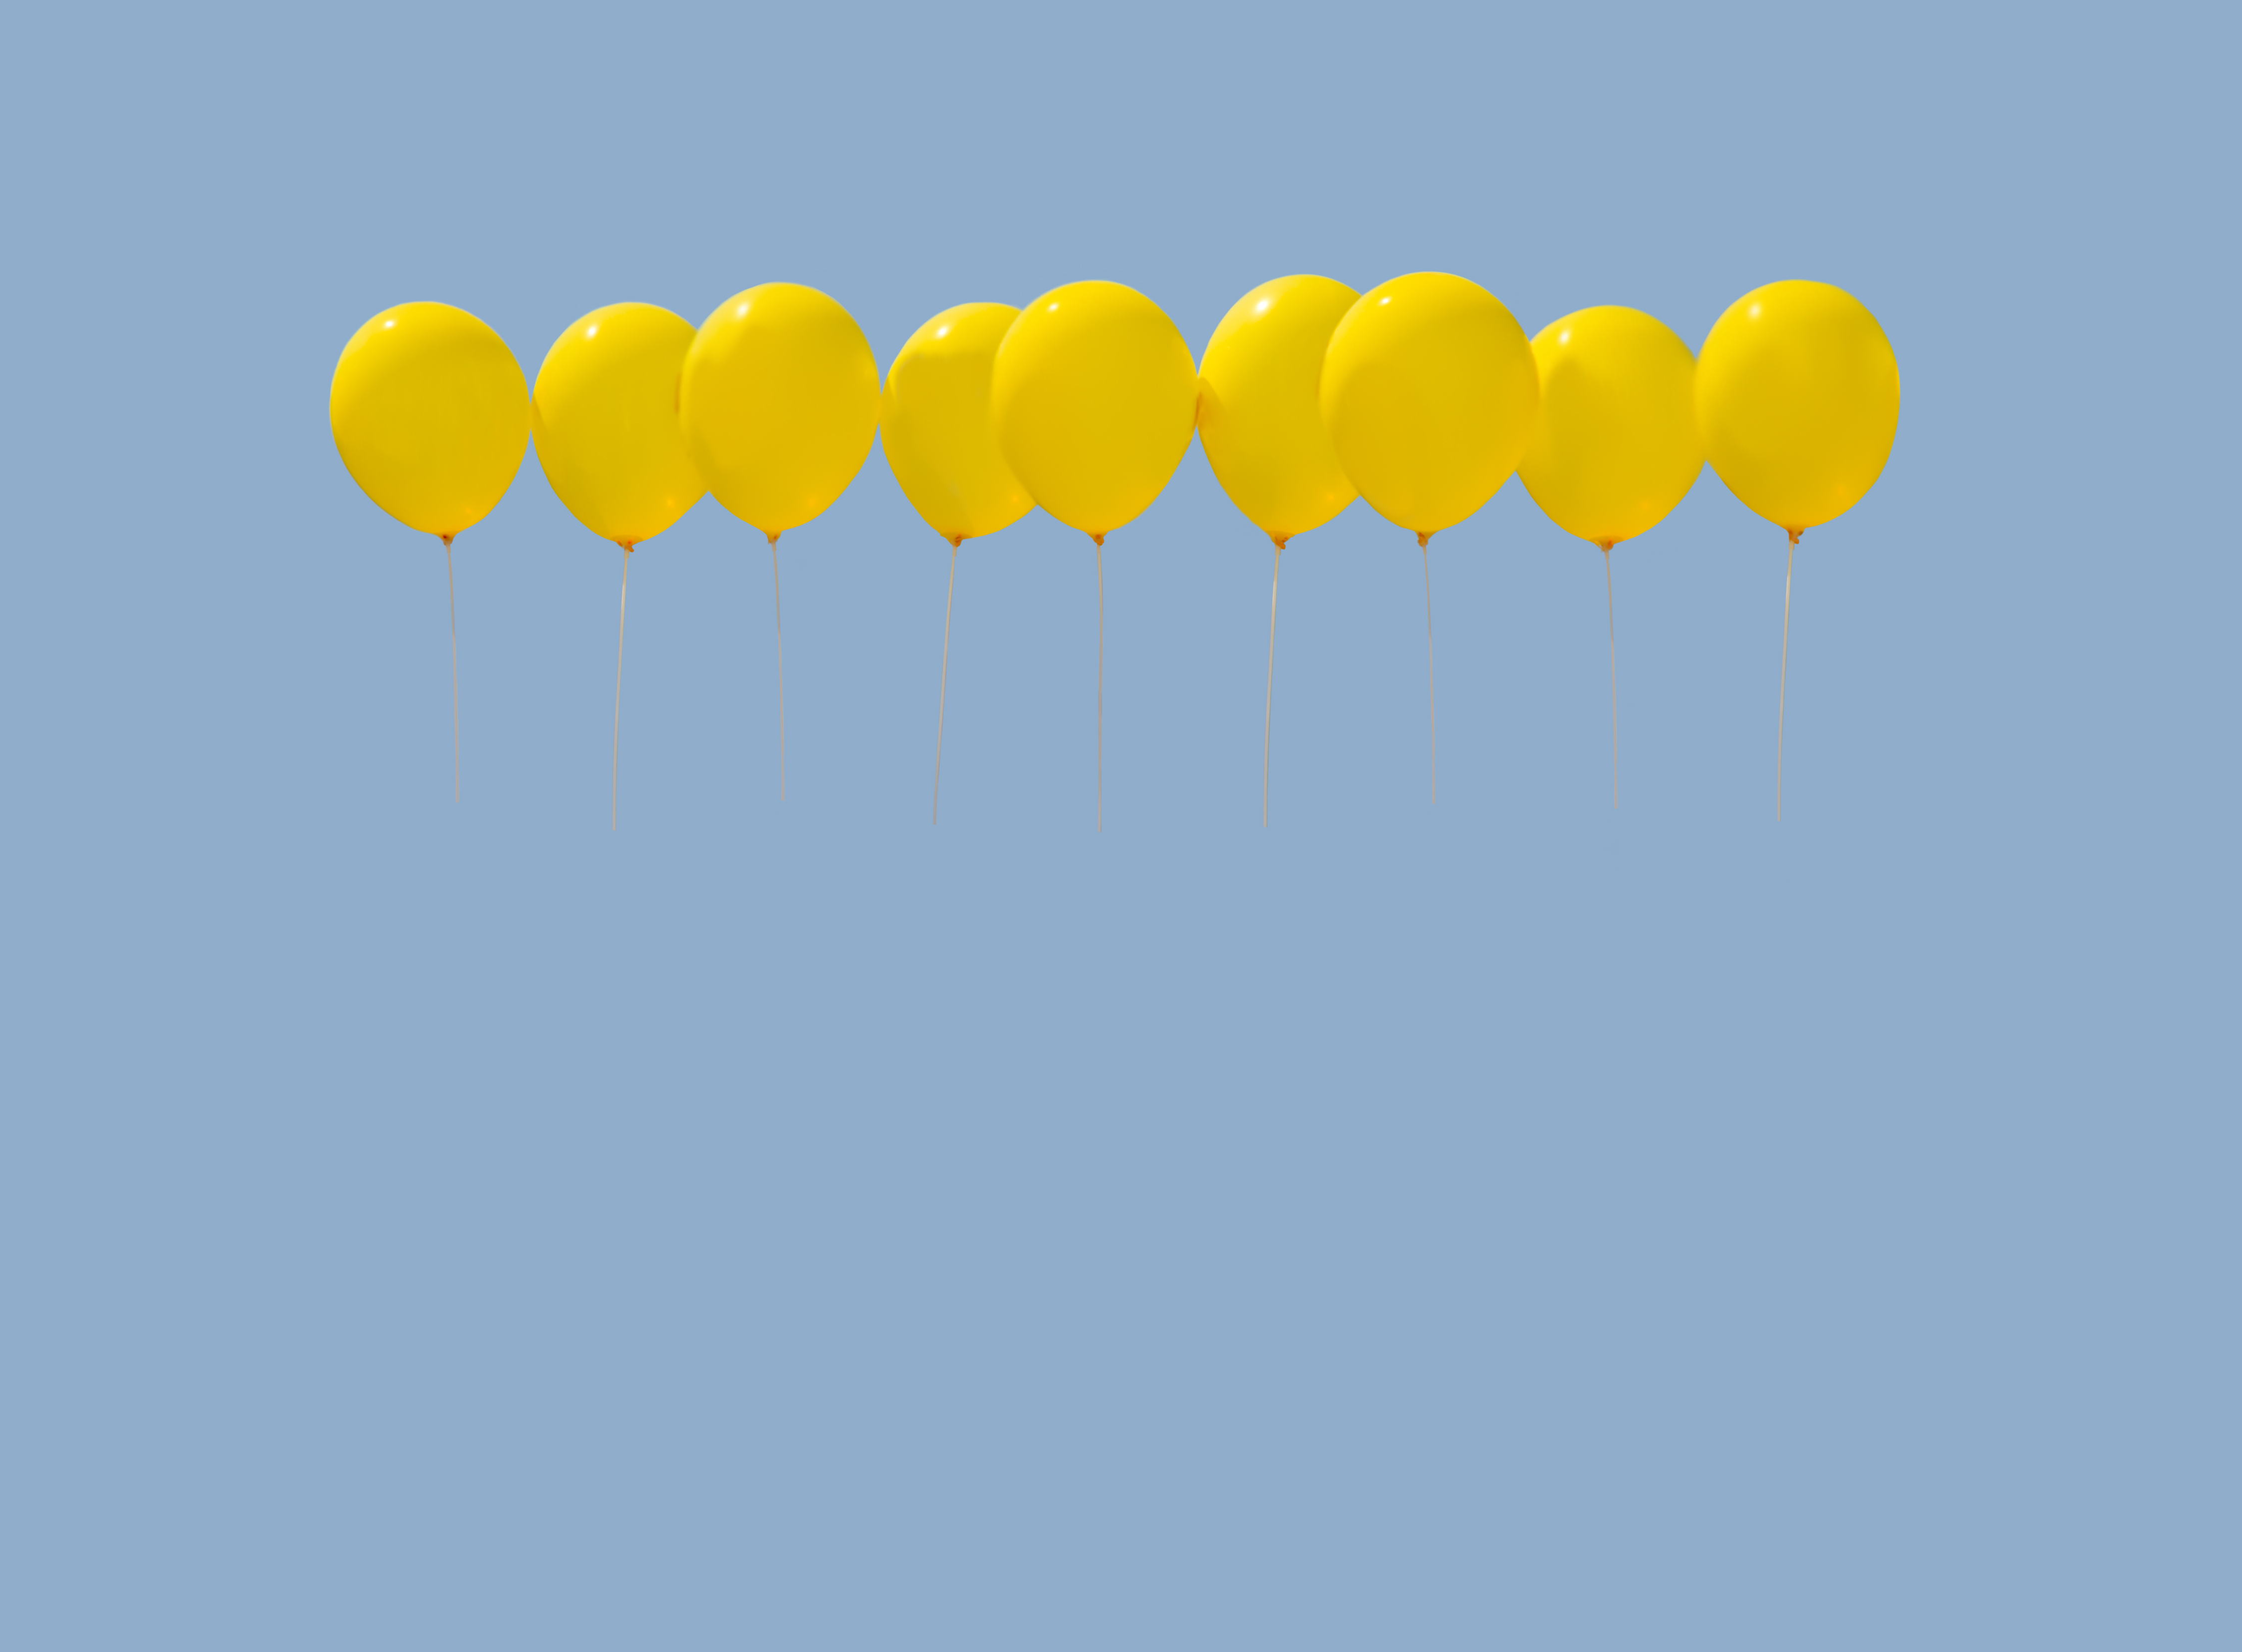 Nine yellow balloons soaring against light blue sky with copy space.